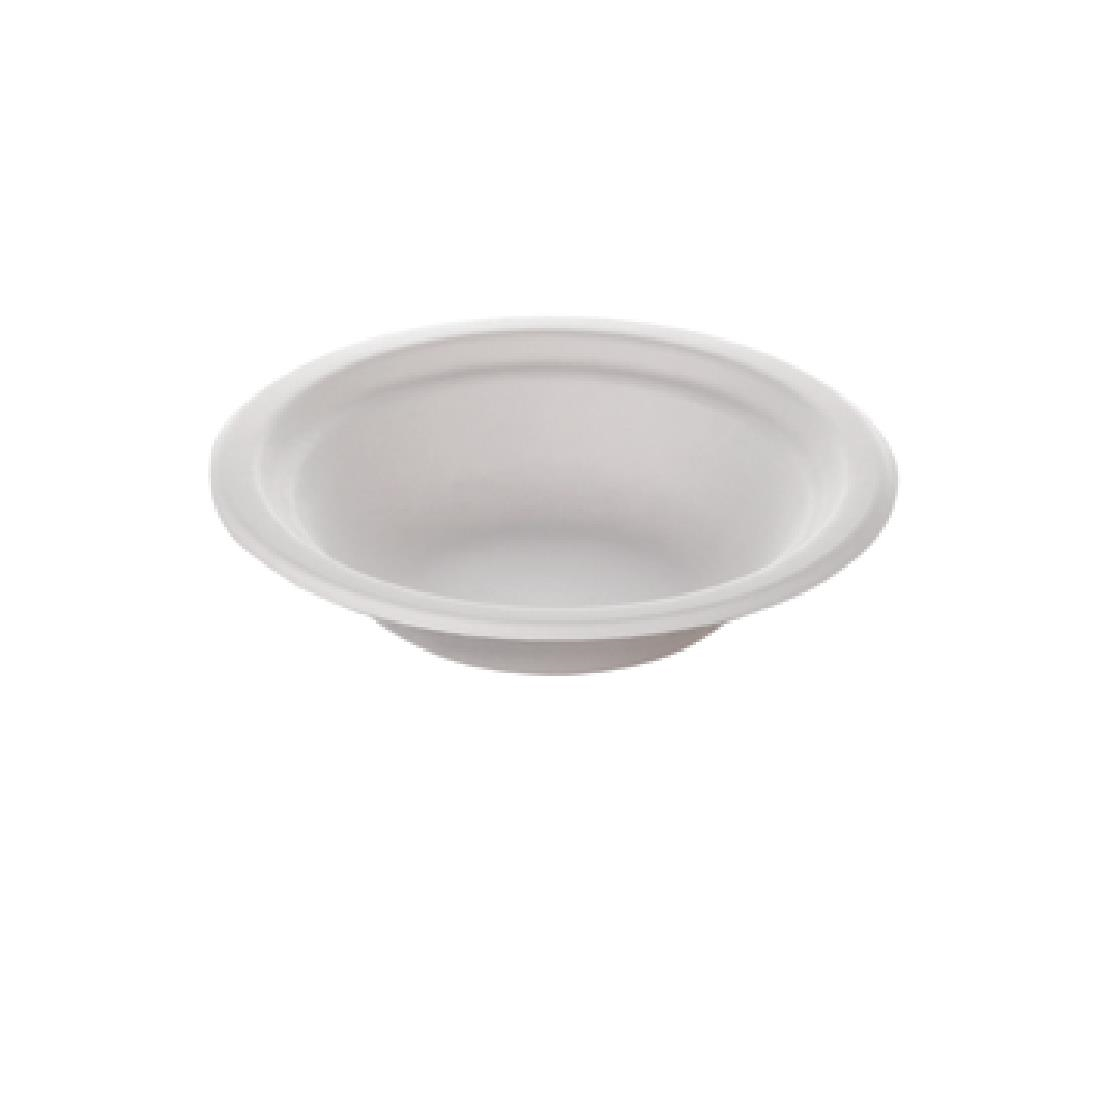 Image of Huhtamaki Compostable Moulded Fibre Chinet Bowls 12oz (Pack of 140) Pack of 140